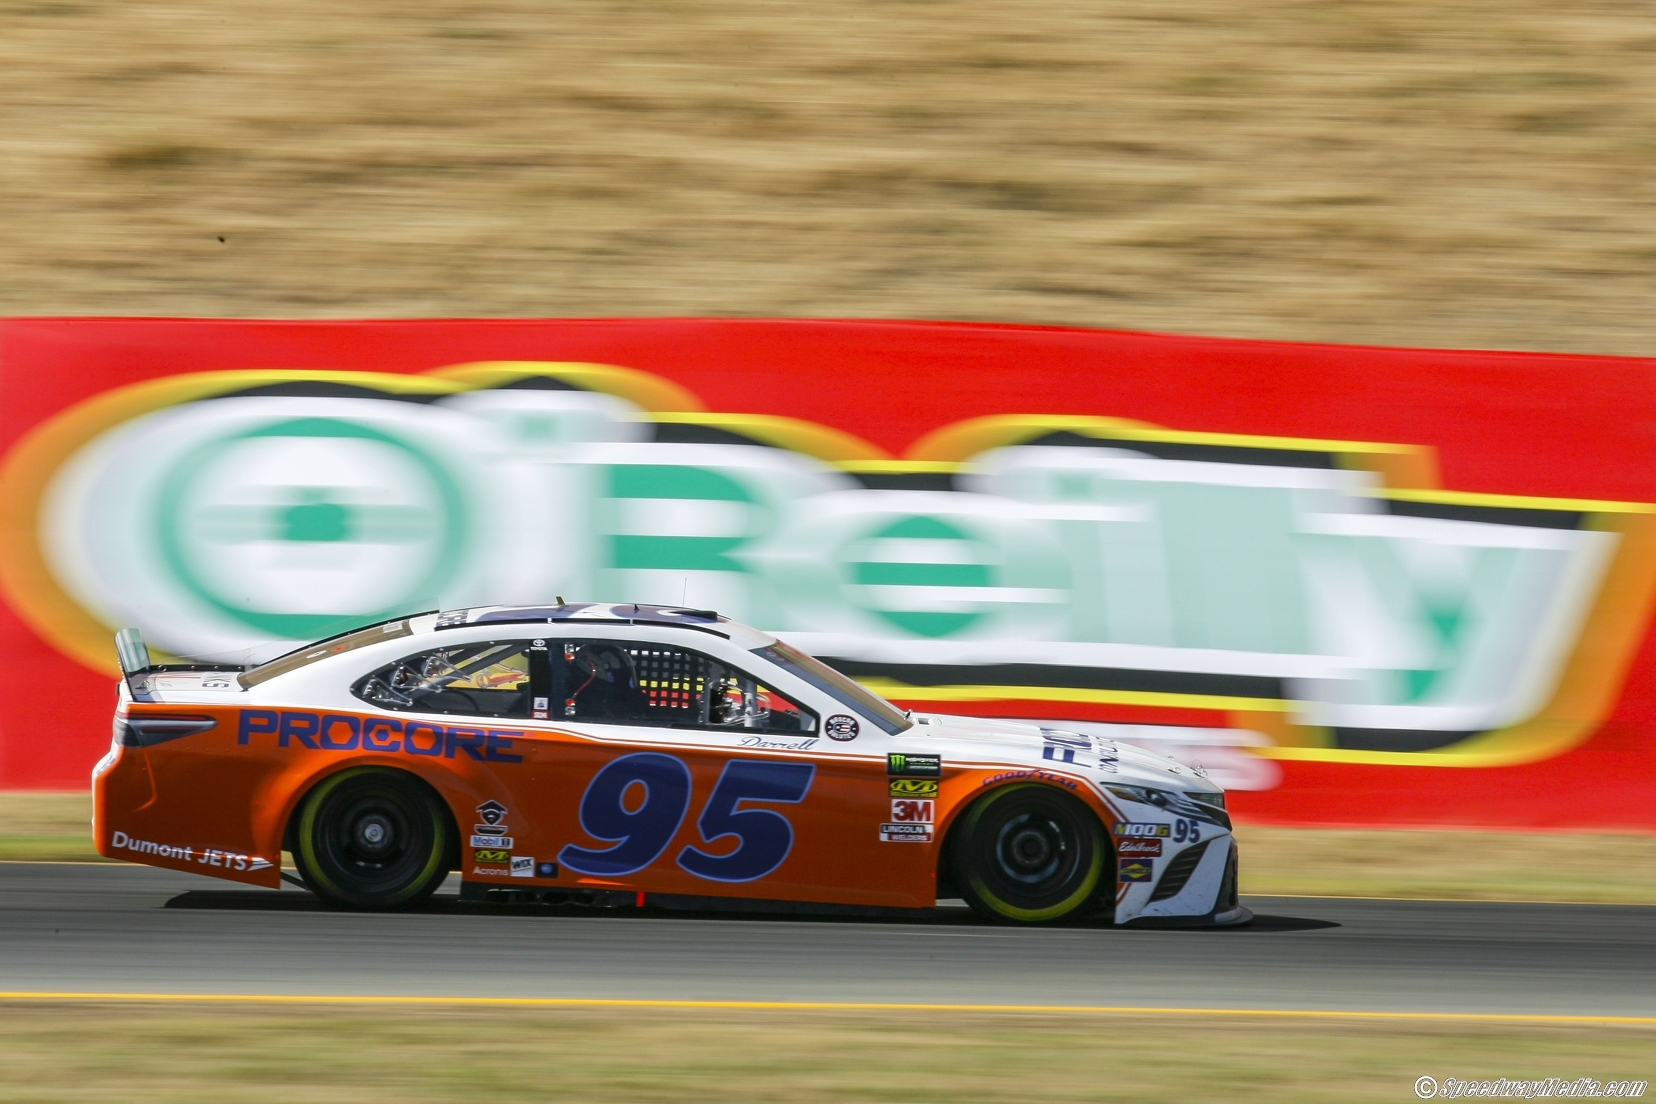 Matt DiBenedetto lays down some practice laps around the original carousel at Sonoma Raceway. Photo courtesy of Rachel Schuoler for Speedway Media.